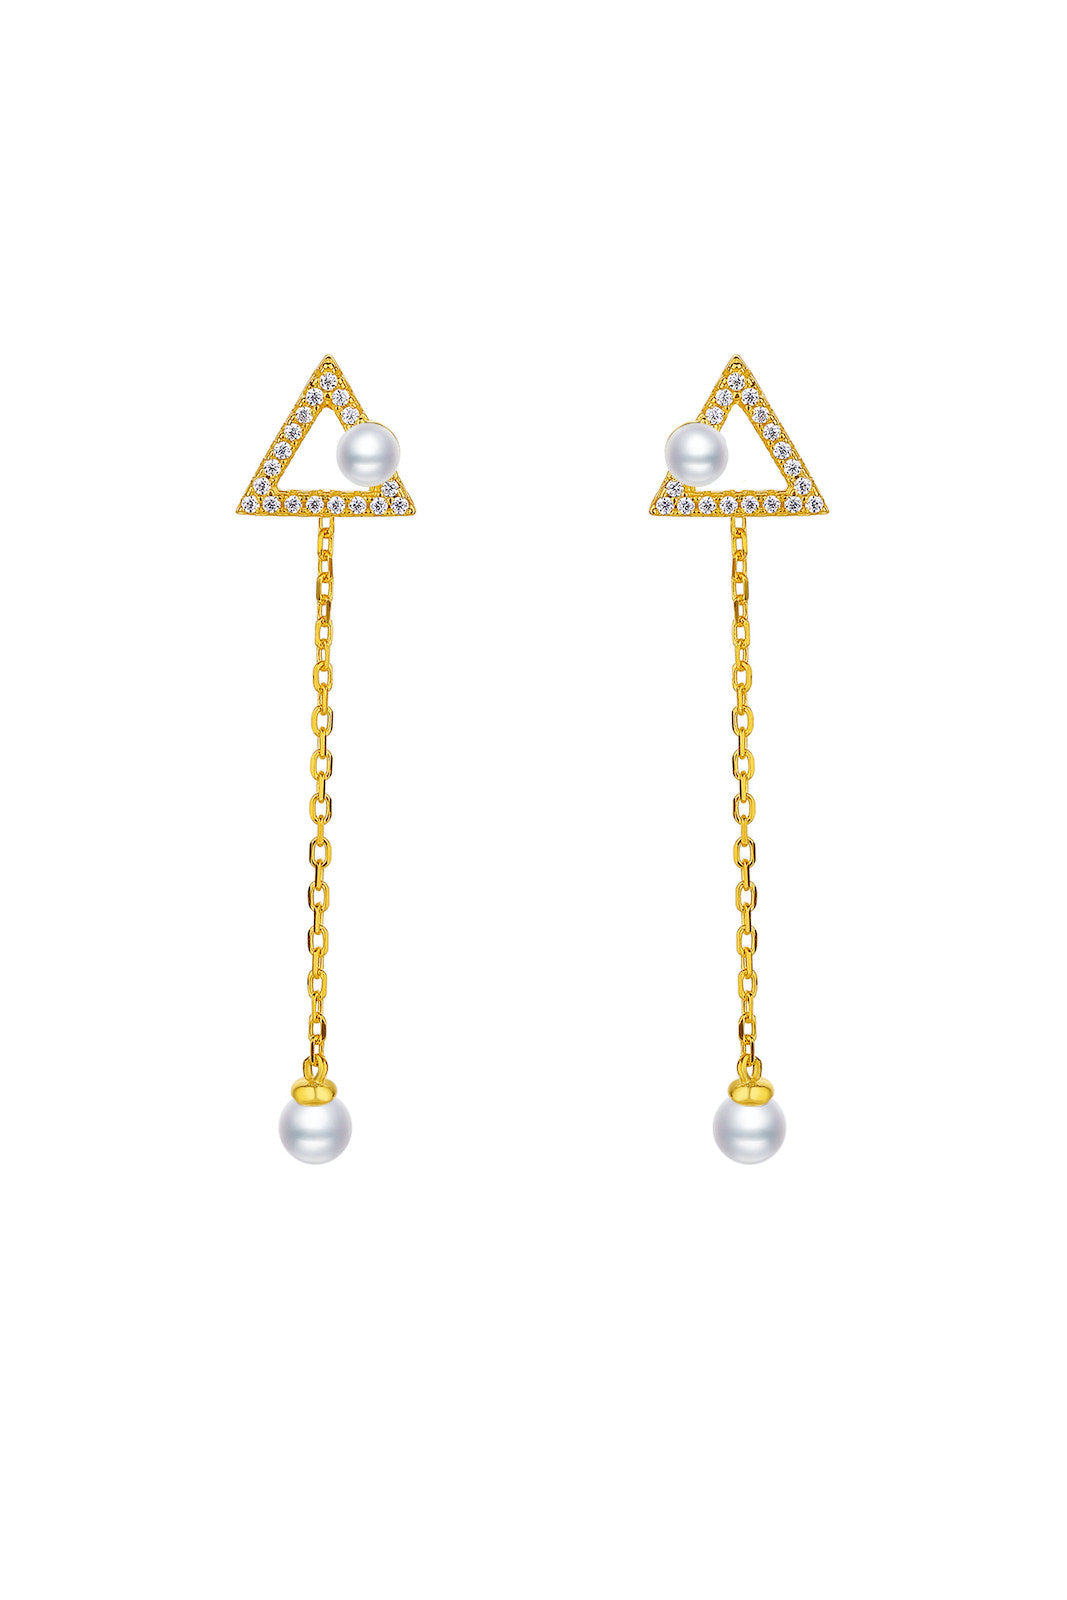 Gold Plated Geometrical Silver Earrings - Mini Triangle